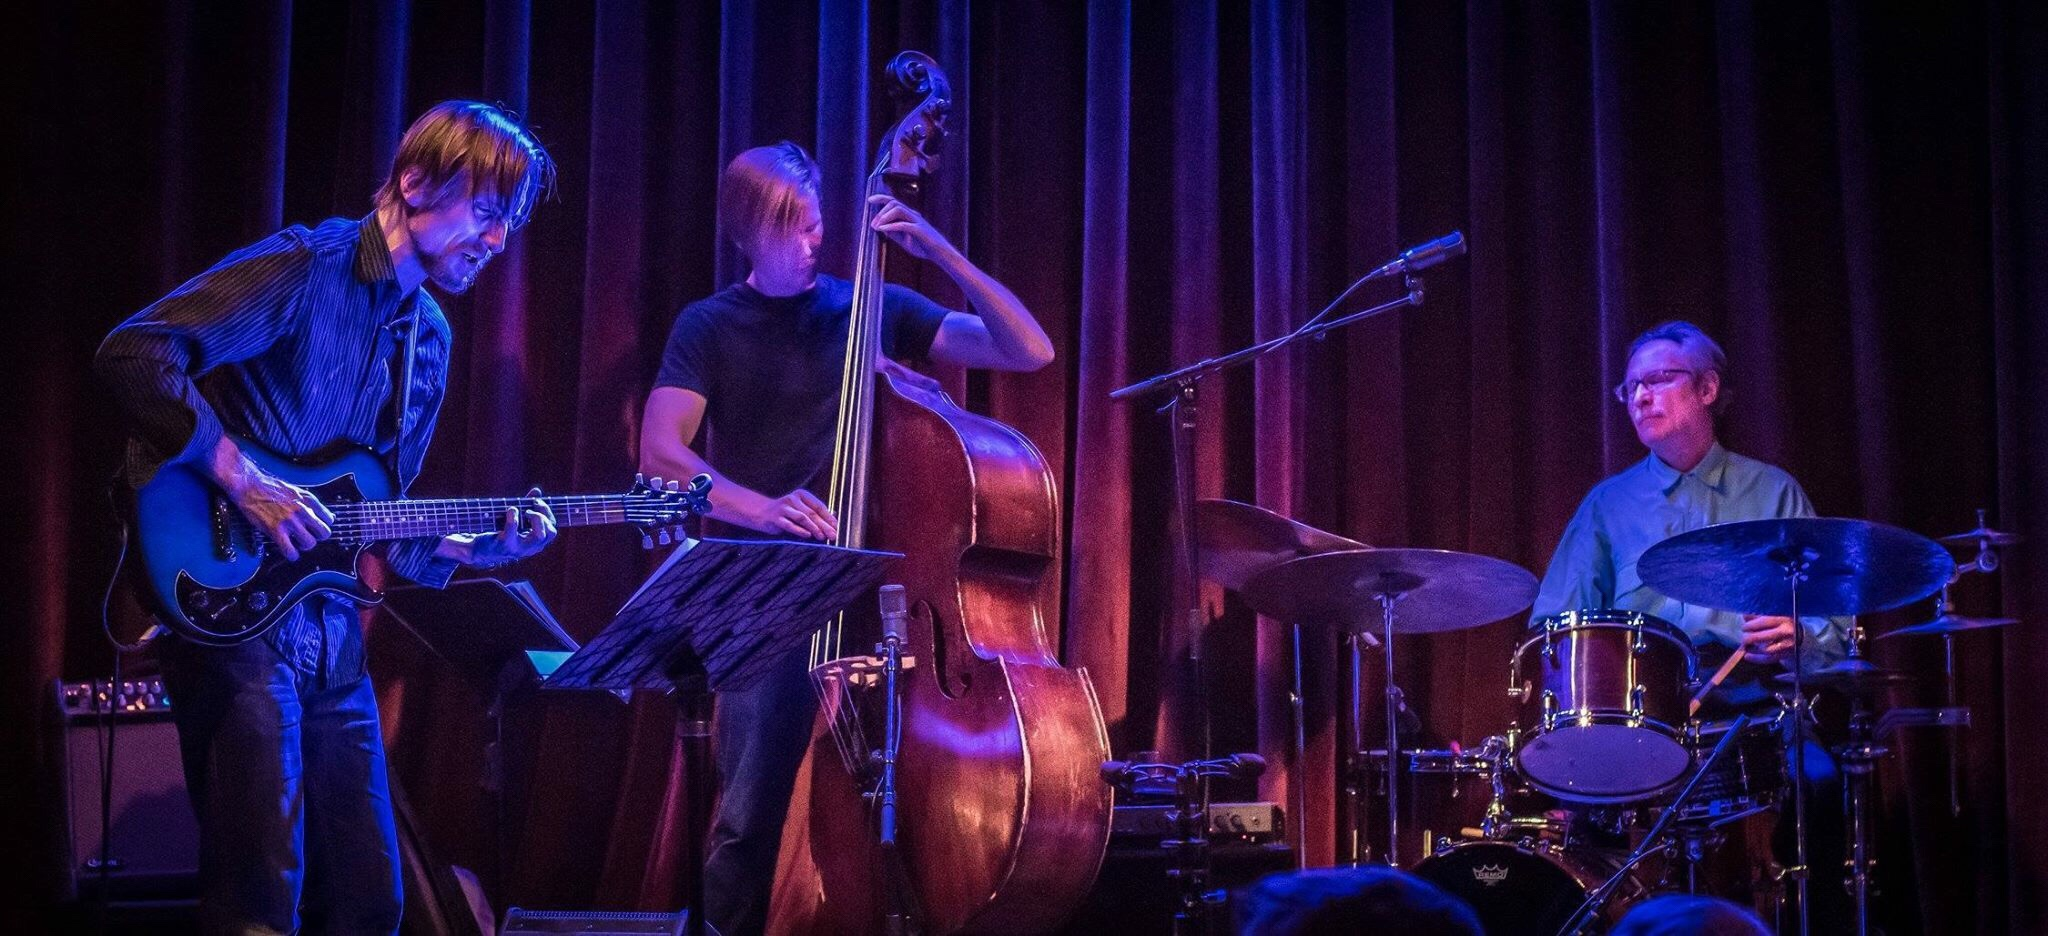 Park Evans' Firebell  Firebell is Park Evans (guitar), Graydon Peterson (bass), and Jay Epstein (drums). Evans is a versatile guitarist who draws heavily on rock and world music influences and has been a mainstay on the Twin Cities improvised music scene for a number of years. He and Peterson, who leads his own quartet as well, handle most of the writing in this captivating and ethereal trio. Epstein, who has an extensive jazz career having played with the likes of Bill Carrothers, Dean Magraw, and Bill Stewart, completes the group with his masterful drumming and cymbal work, for which he has garnered critical acclaim throughout his career.